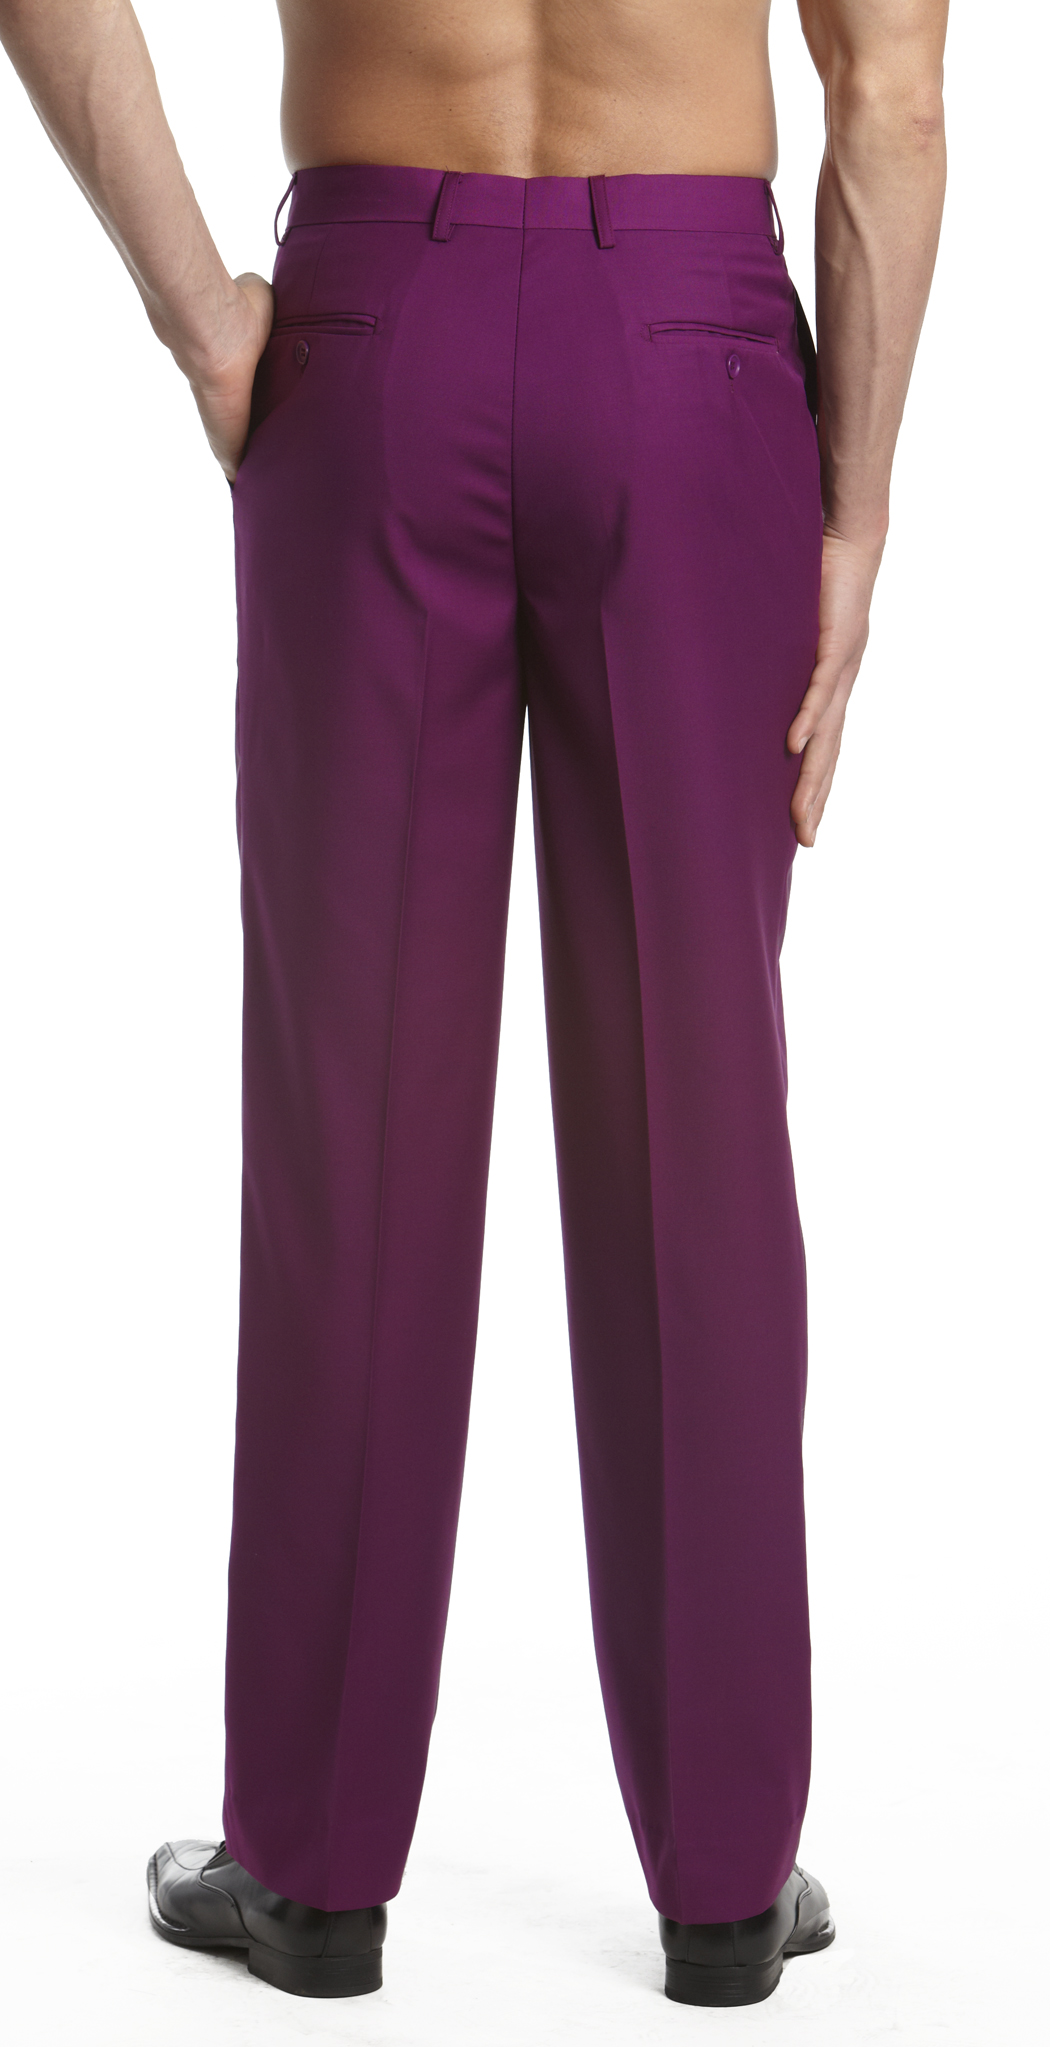 Step it Up with Women's Slacks and Dress Pants. Fall fashion is always fun at JCPenney. We offer the latest styles at affordable prices for women of all ages and body types. Comfort and fit are especially important when shopping for women's slacks, so we make sure we have a variety of options for everyone.